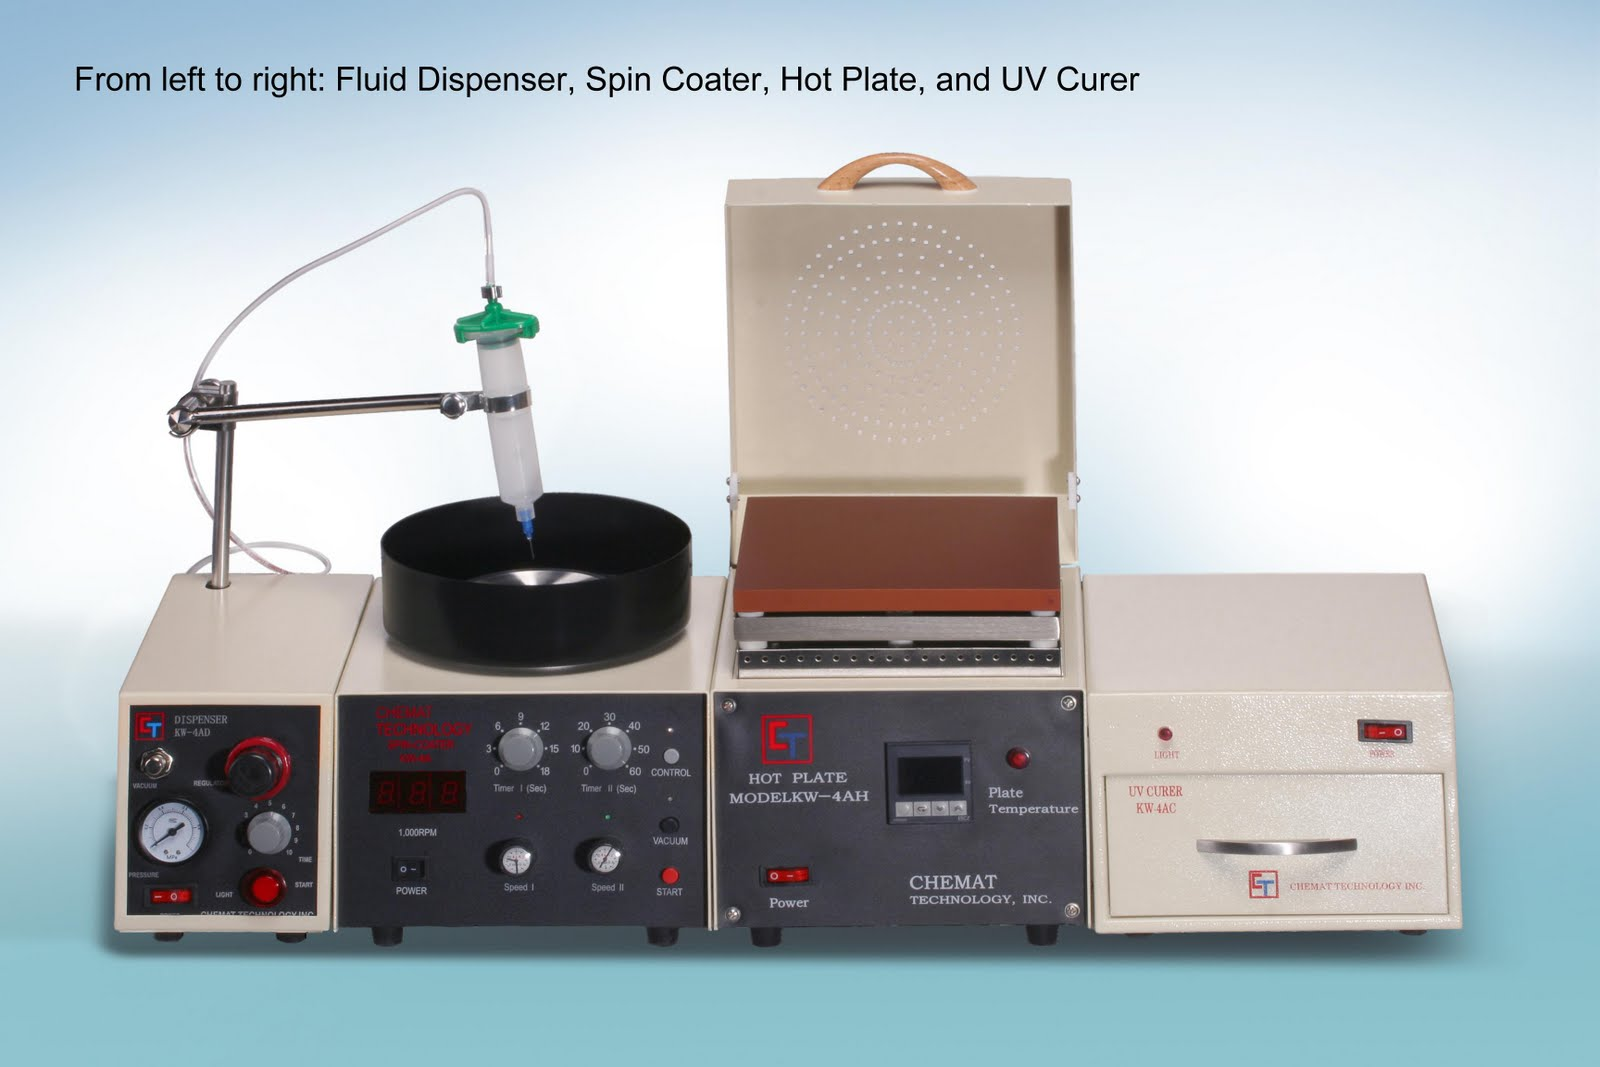 spin coater Chemat precision spin-coater ac/dc input 220 v ac, european 2-pin plug find aldrich-z551589 msds, related peer-reviewed papers, technical documents, similar products & more at sigma-aldrich.